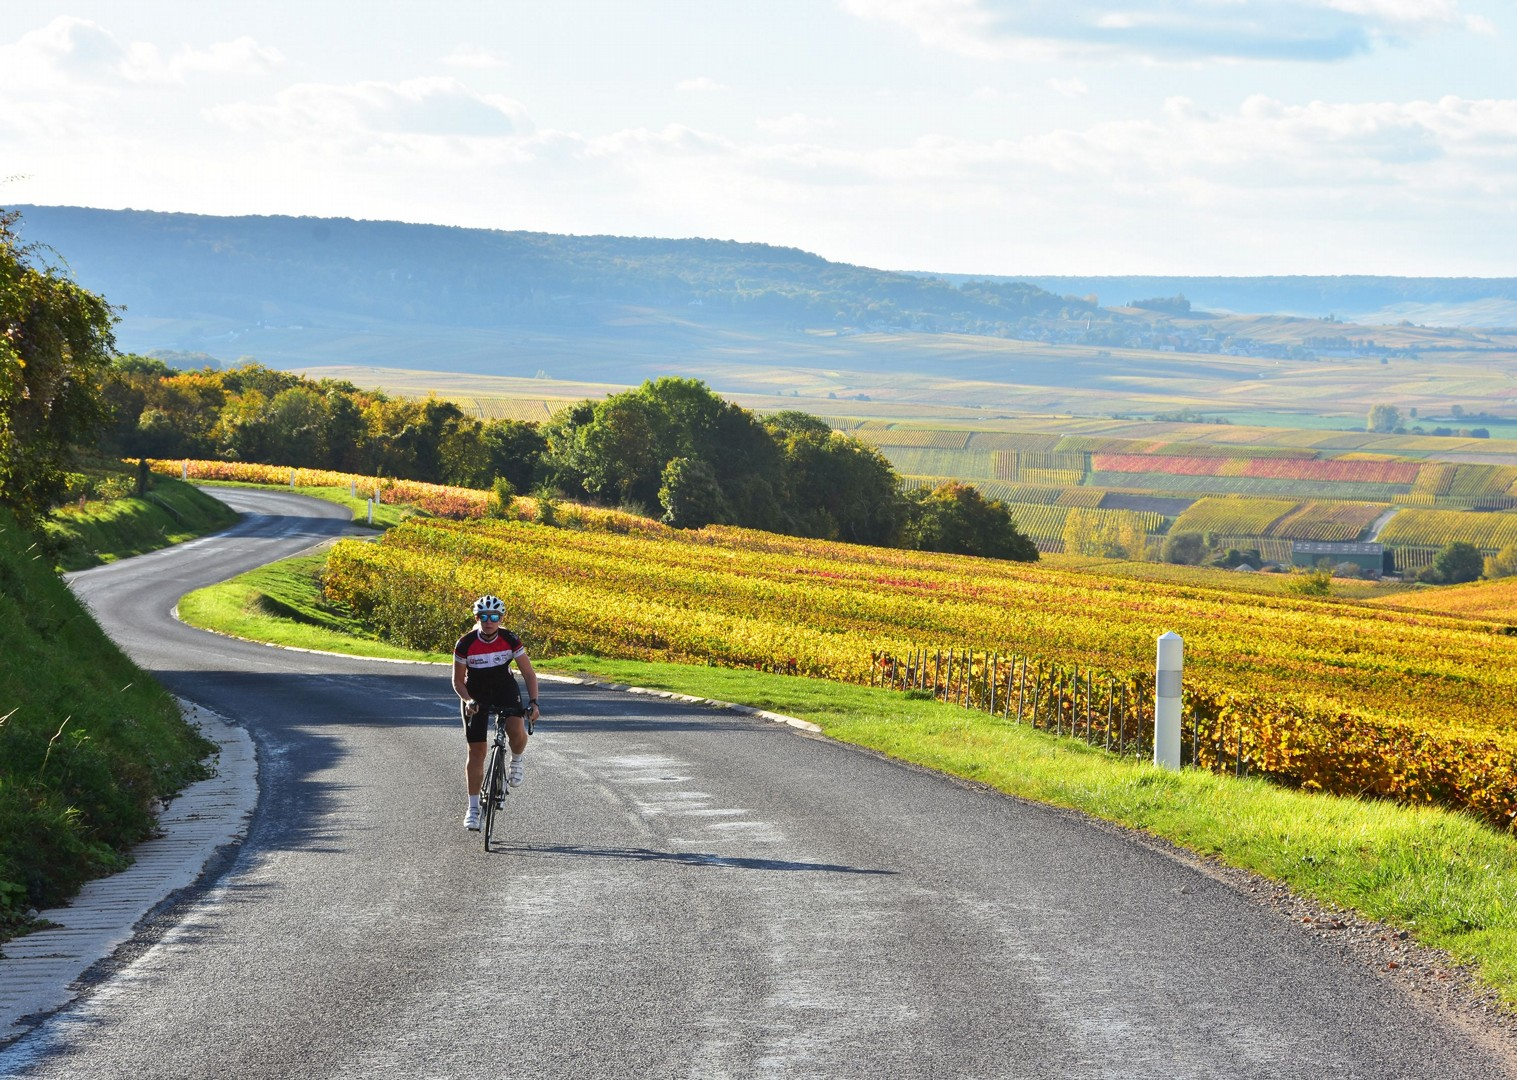 bordeaux-guided-road-cycling-holiday-belgium-and-france-bruges-to-bordeaux.JPG - Belgium and France - Bruges to Bordeaux - Guided Road Cycling Holiday - Road Cycling